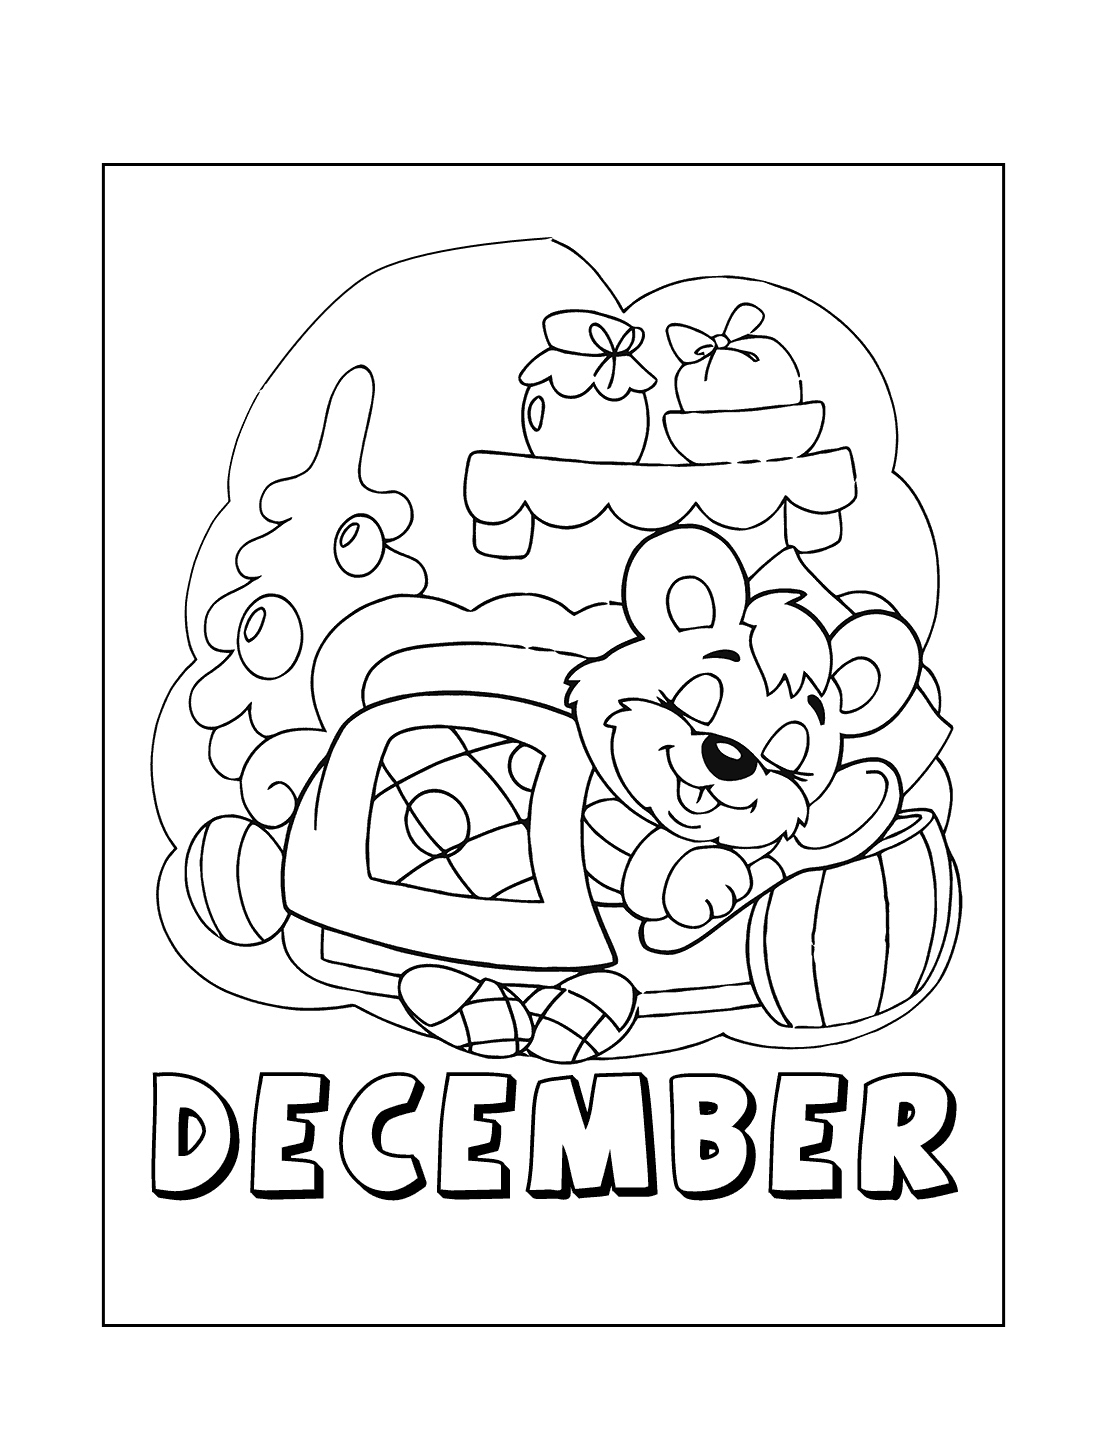 December Dreams Coloring Page